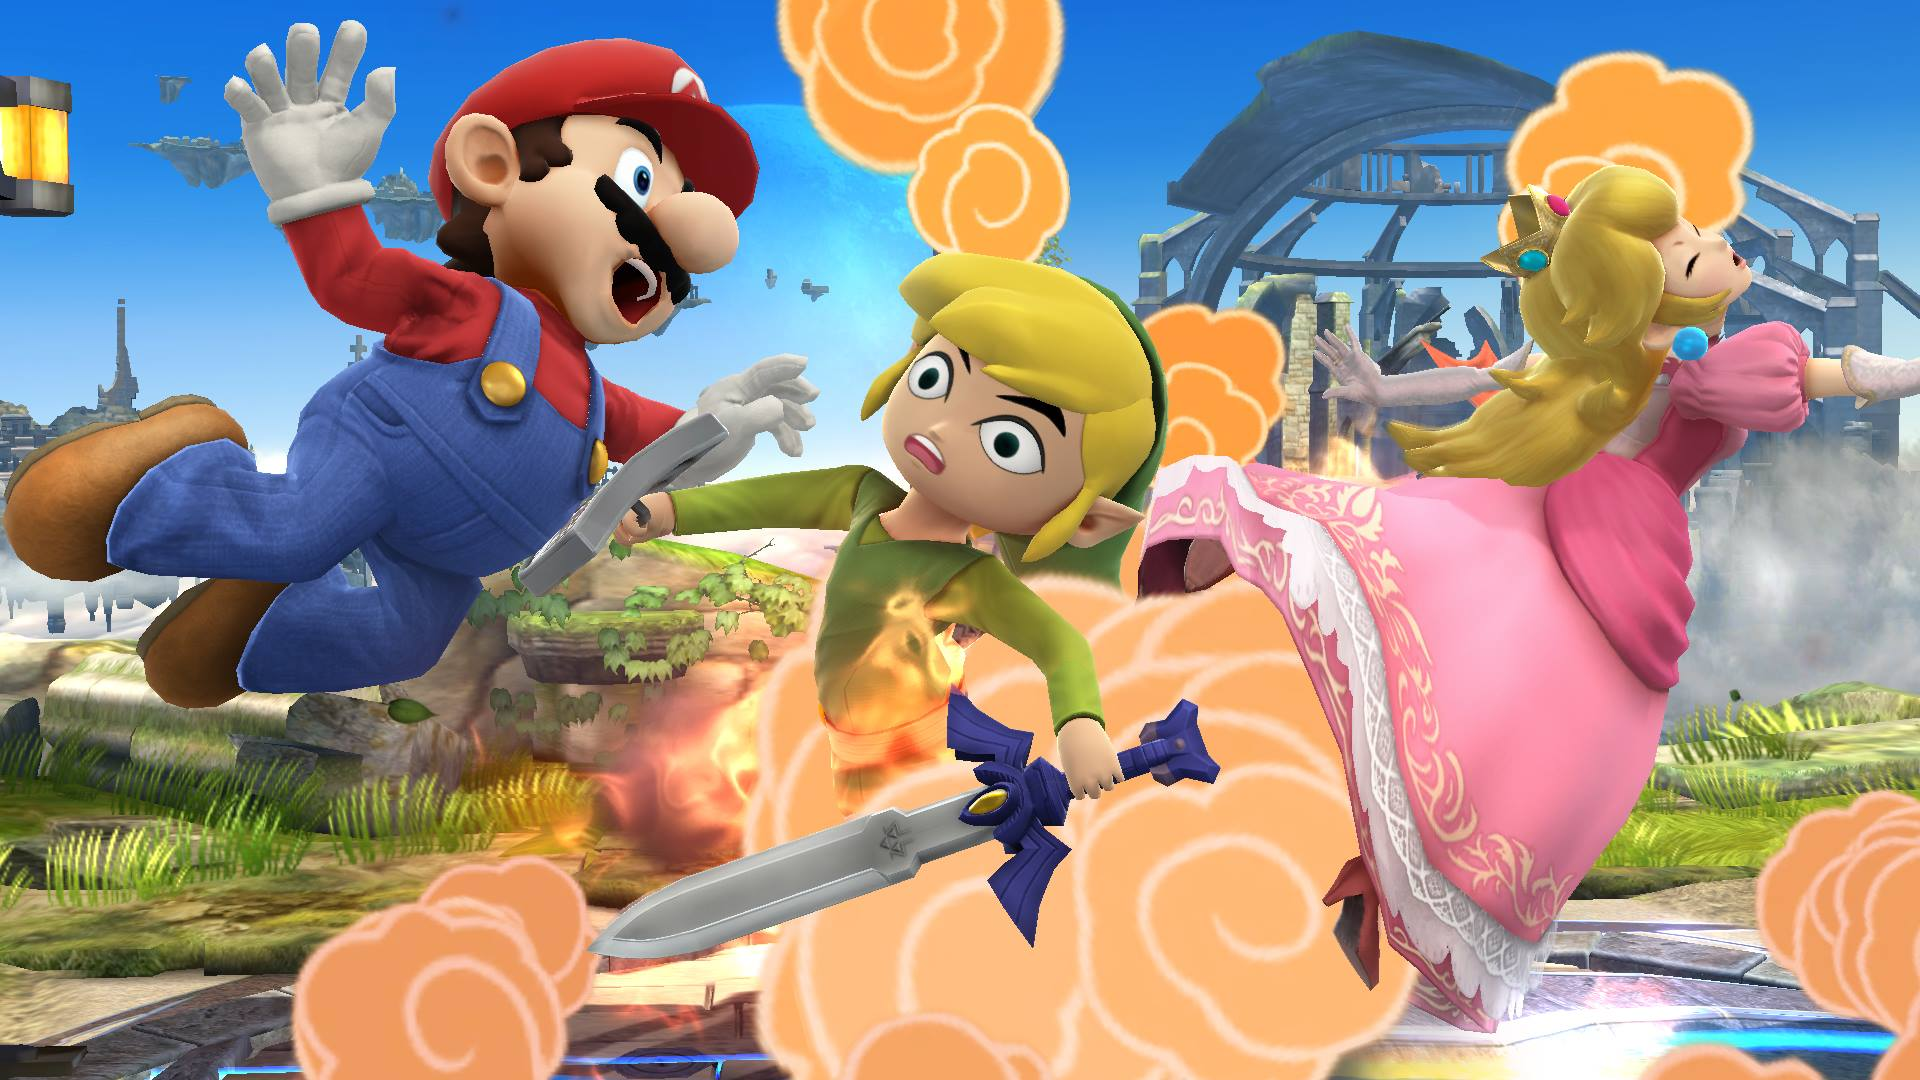 Super-Smash-Bros-3DS-Wii-U-Toon-Link-Peach-Mario-Battlefield